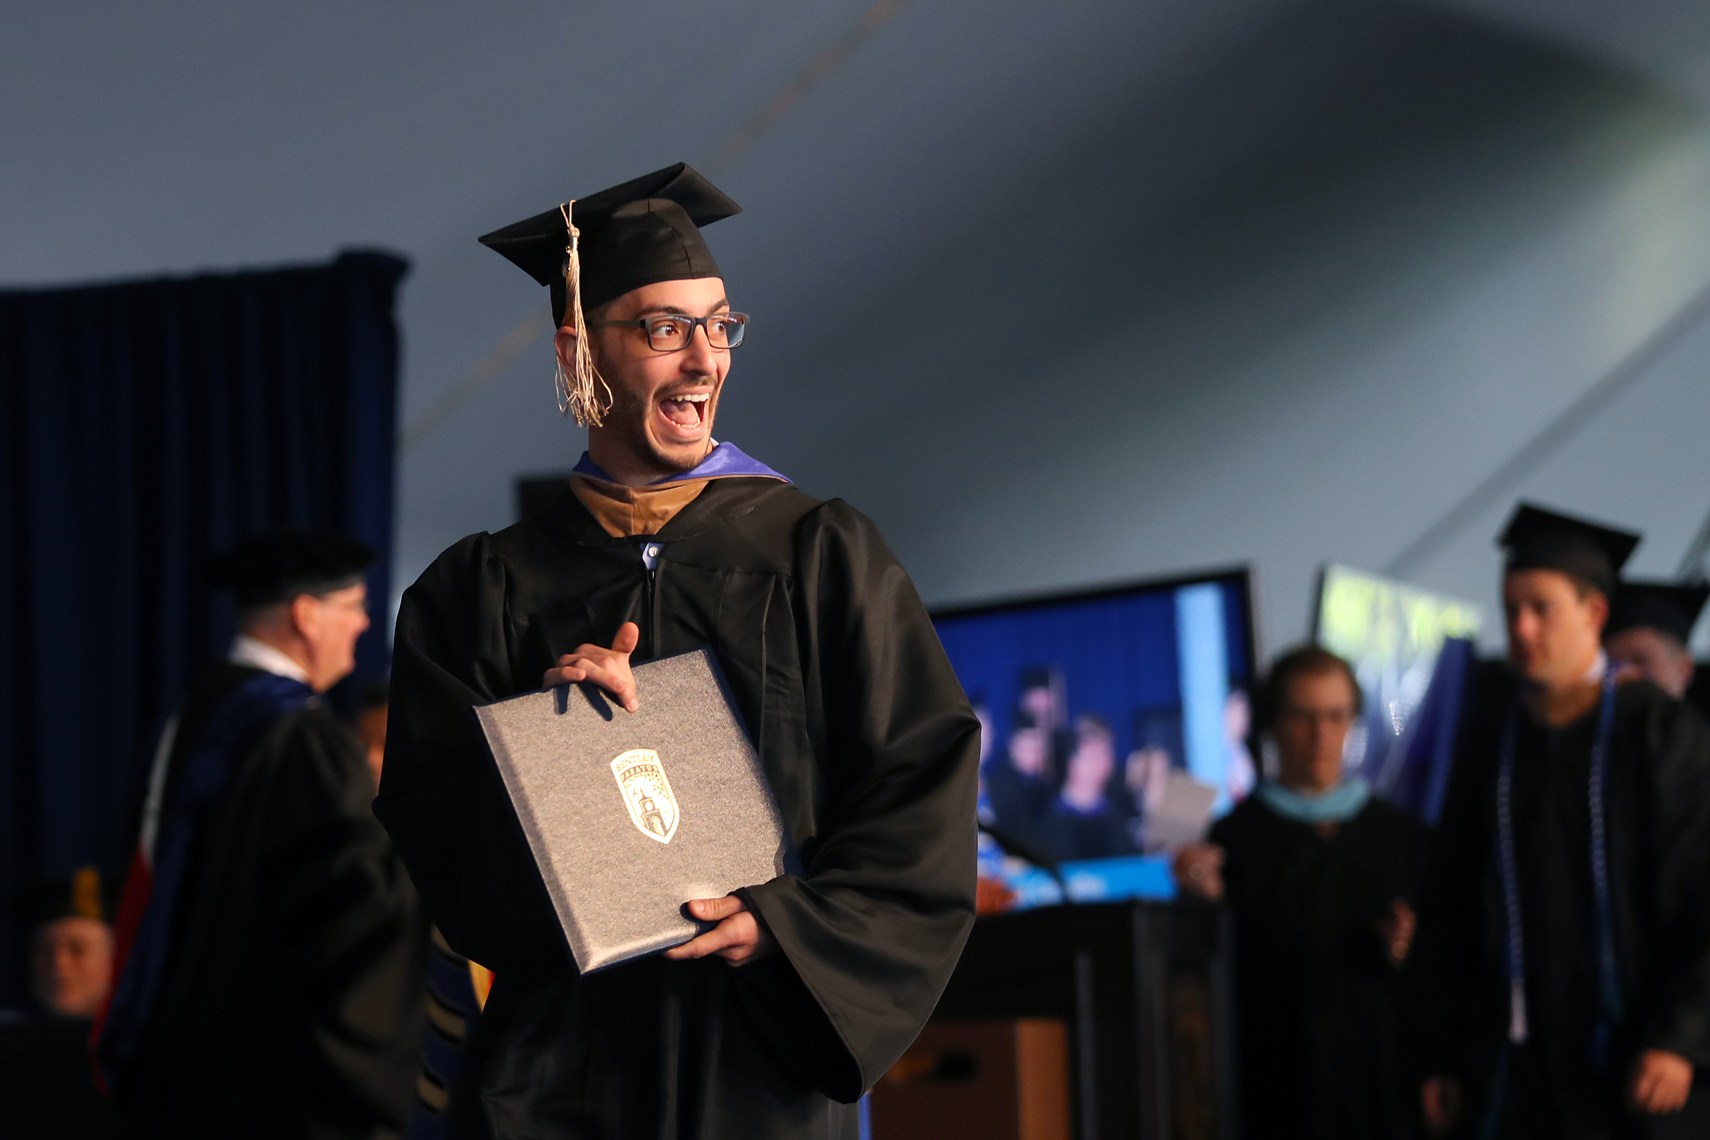 A  recent Bentley graduate shows off his diploma during graduation exercises.